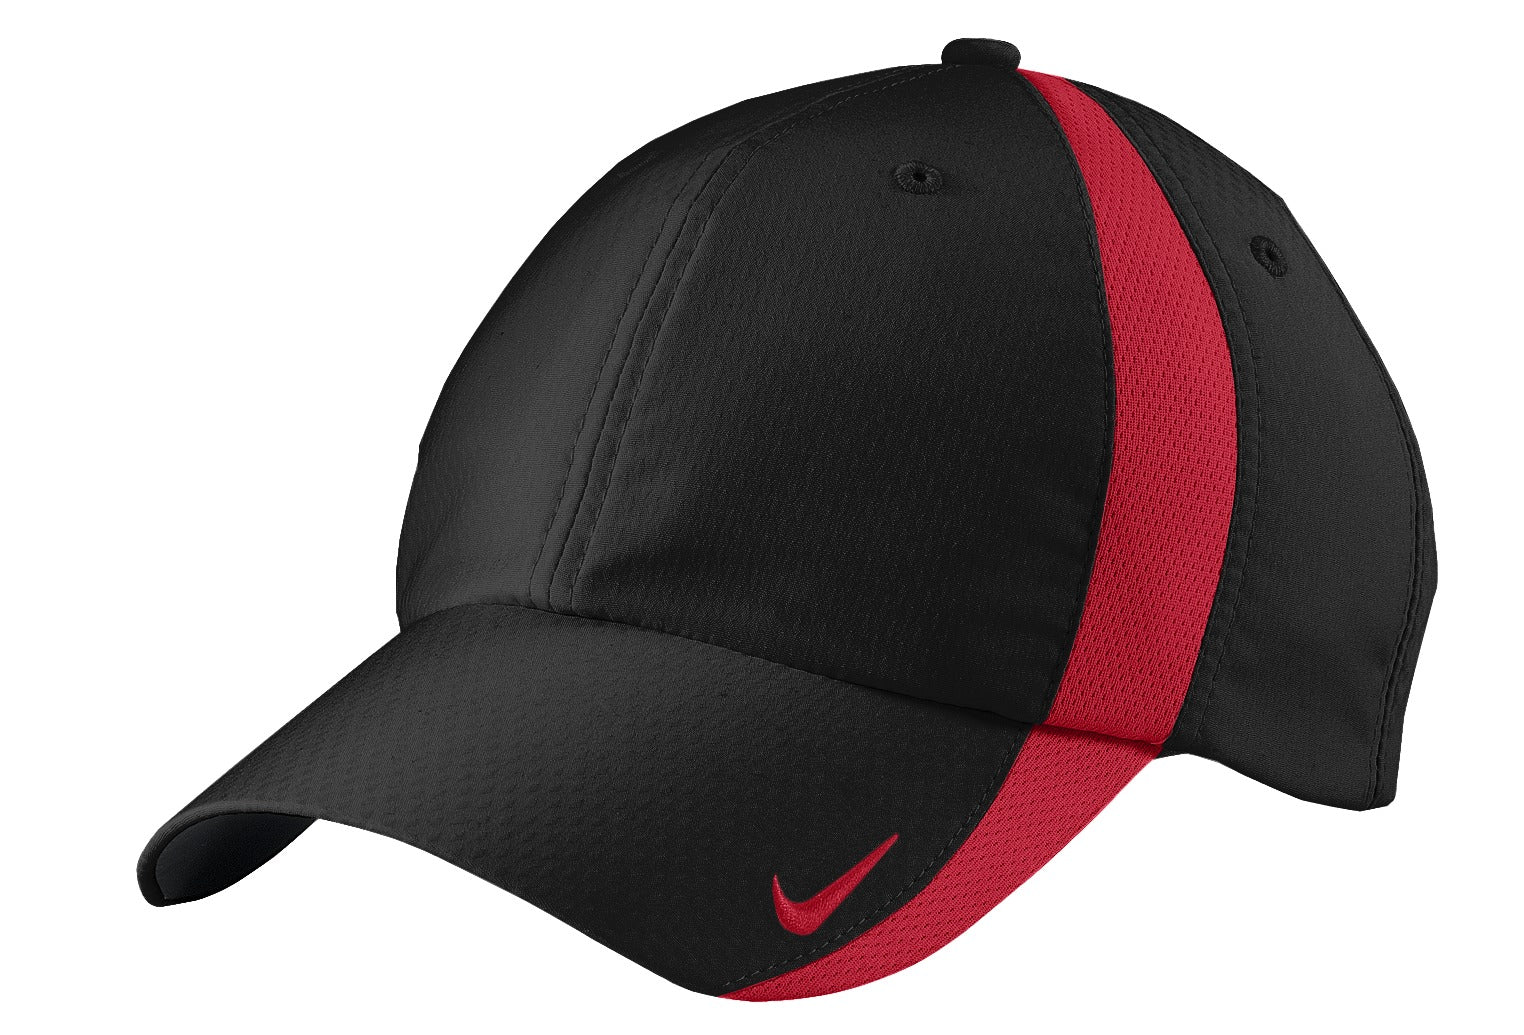 Black / Gym Red Nike Sphere Dry Cap